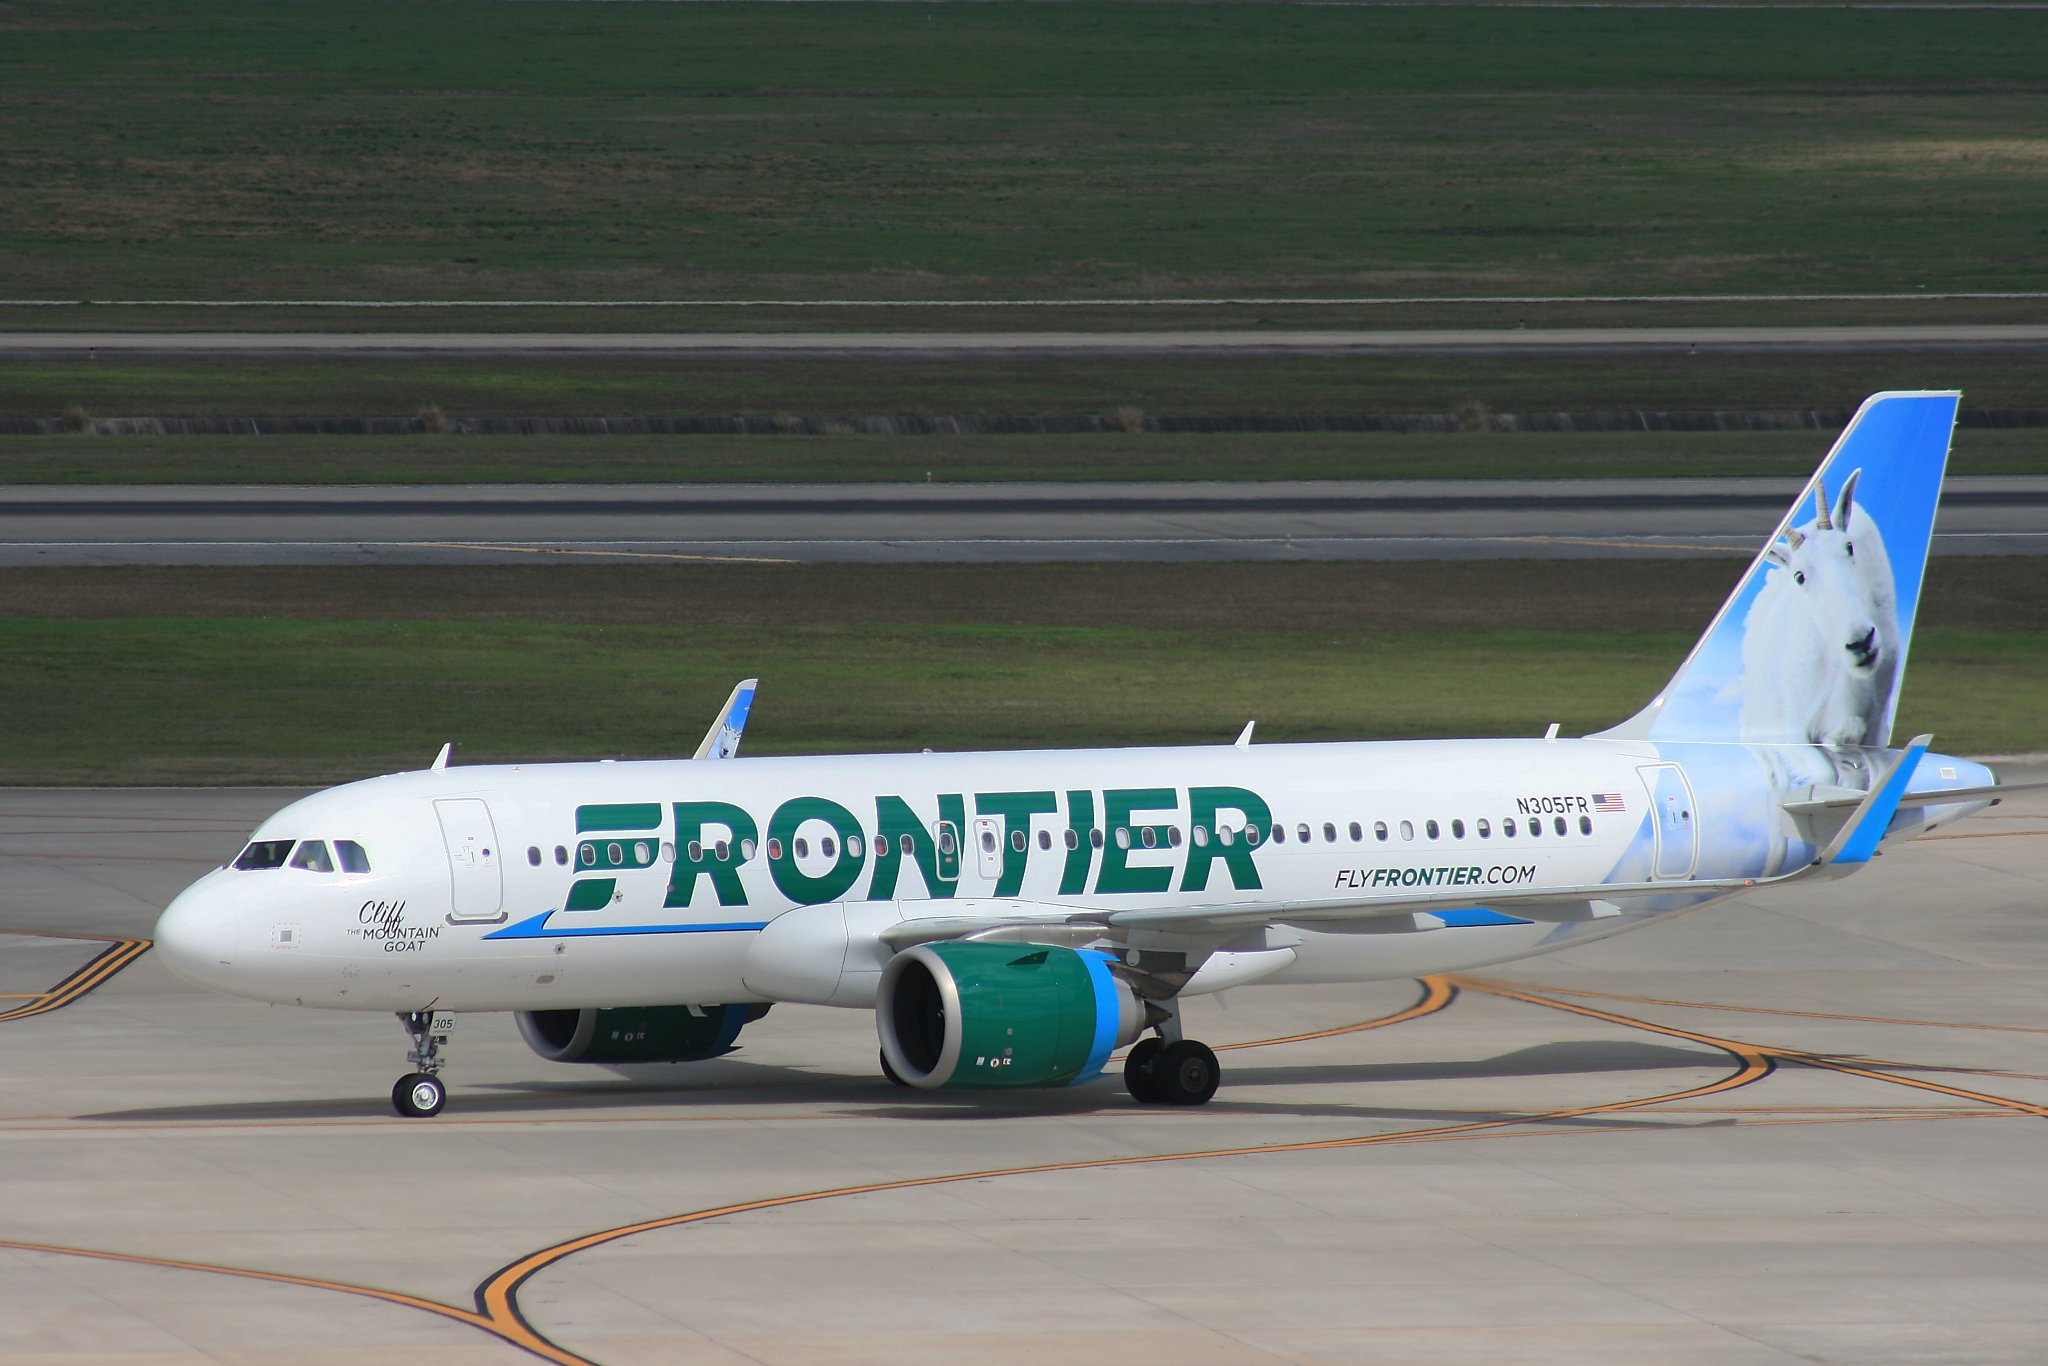 review 5 things to know when flying frontier airlines on the cheap flying frontier airlines